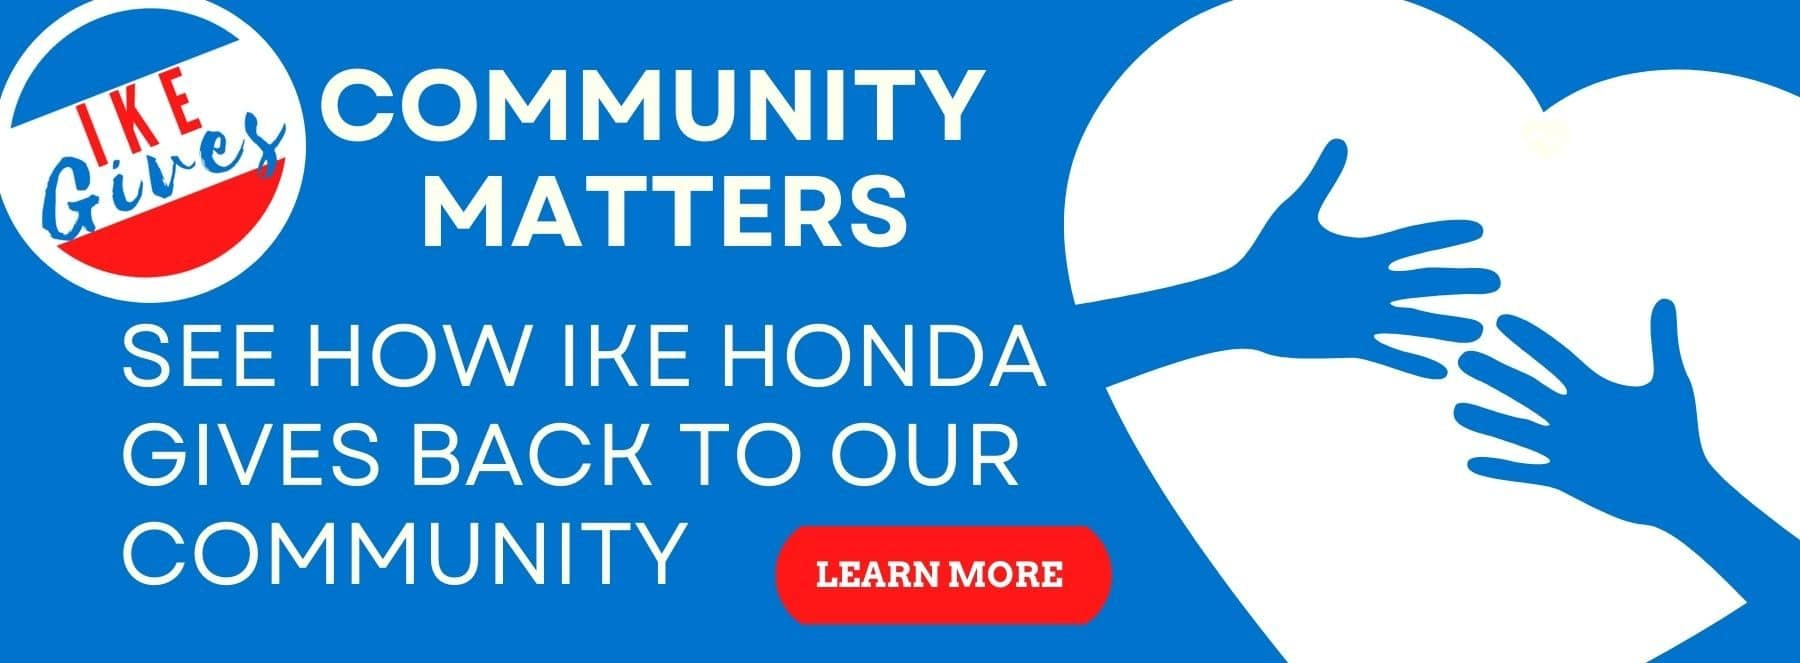 Ike Honda gives back to our community